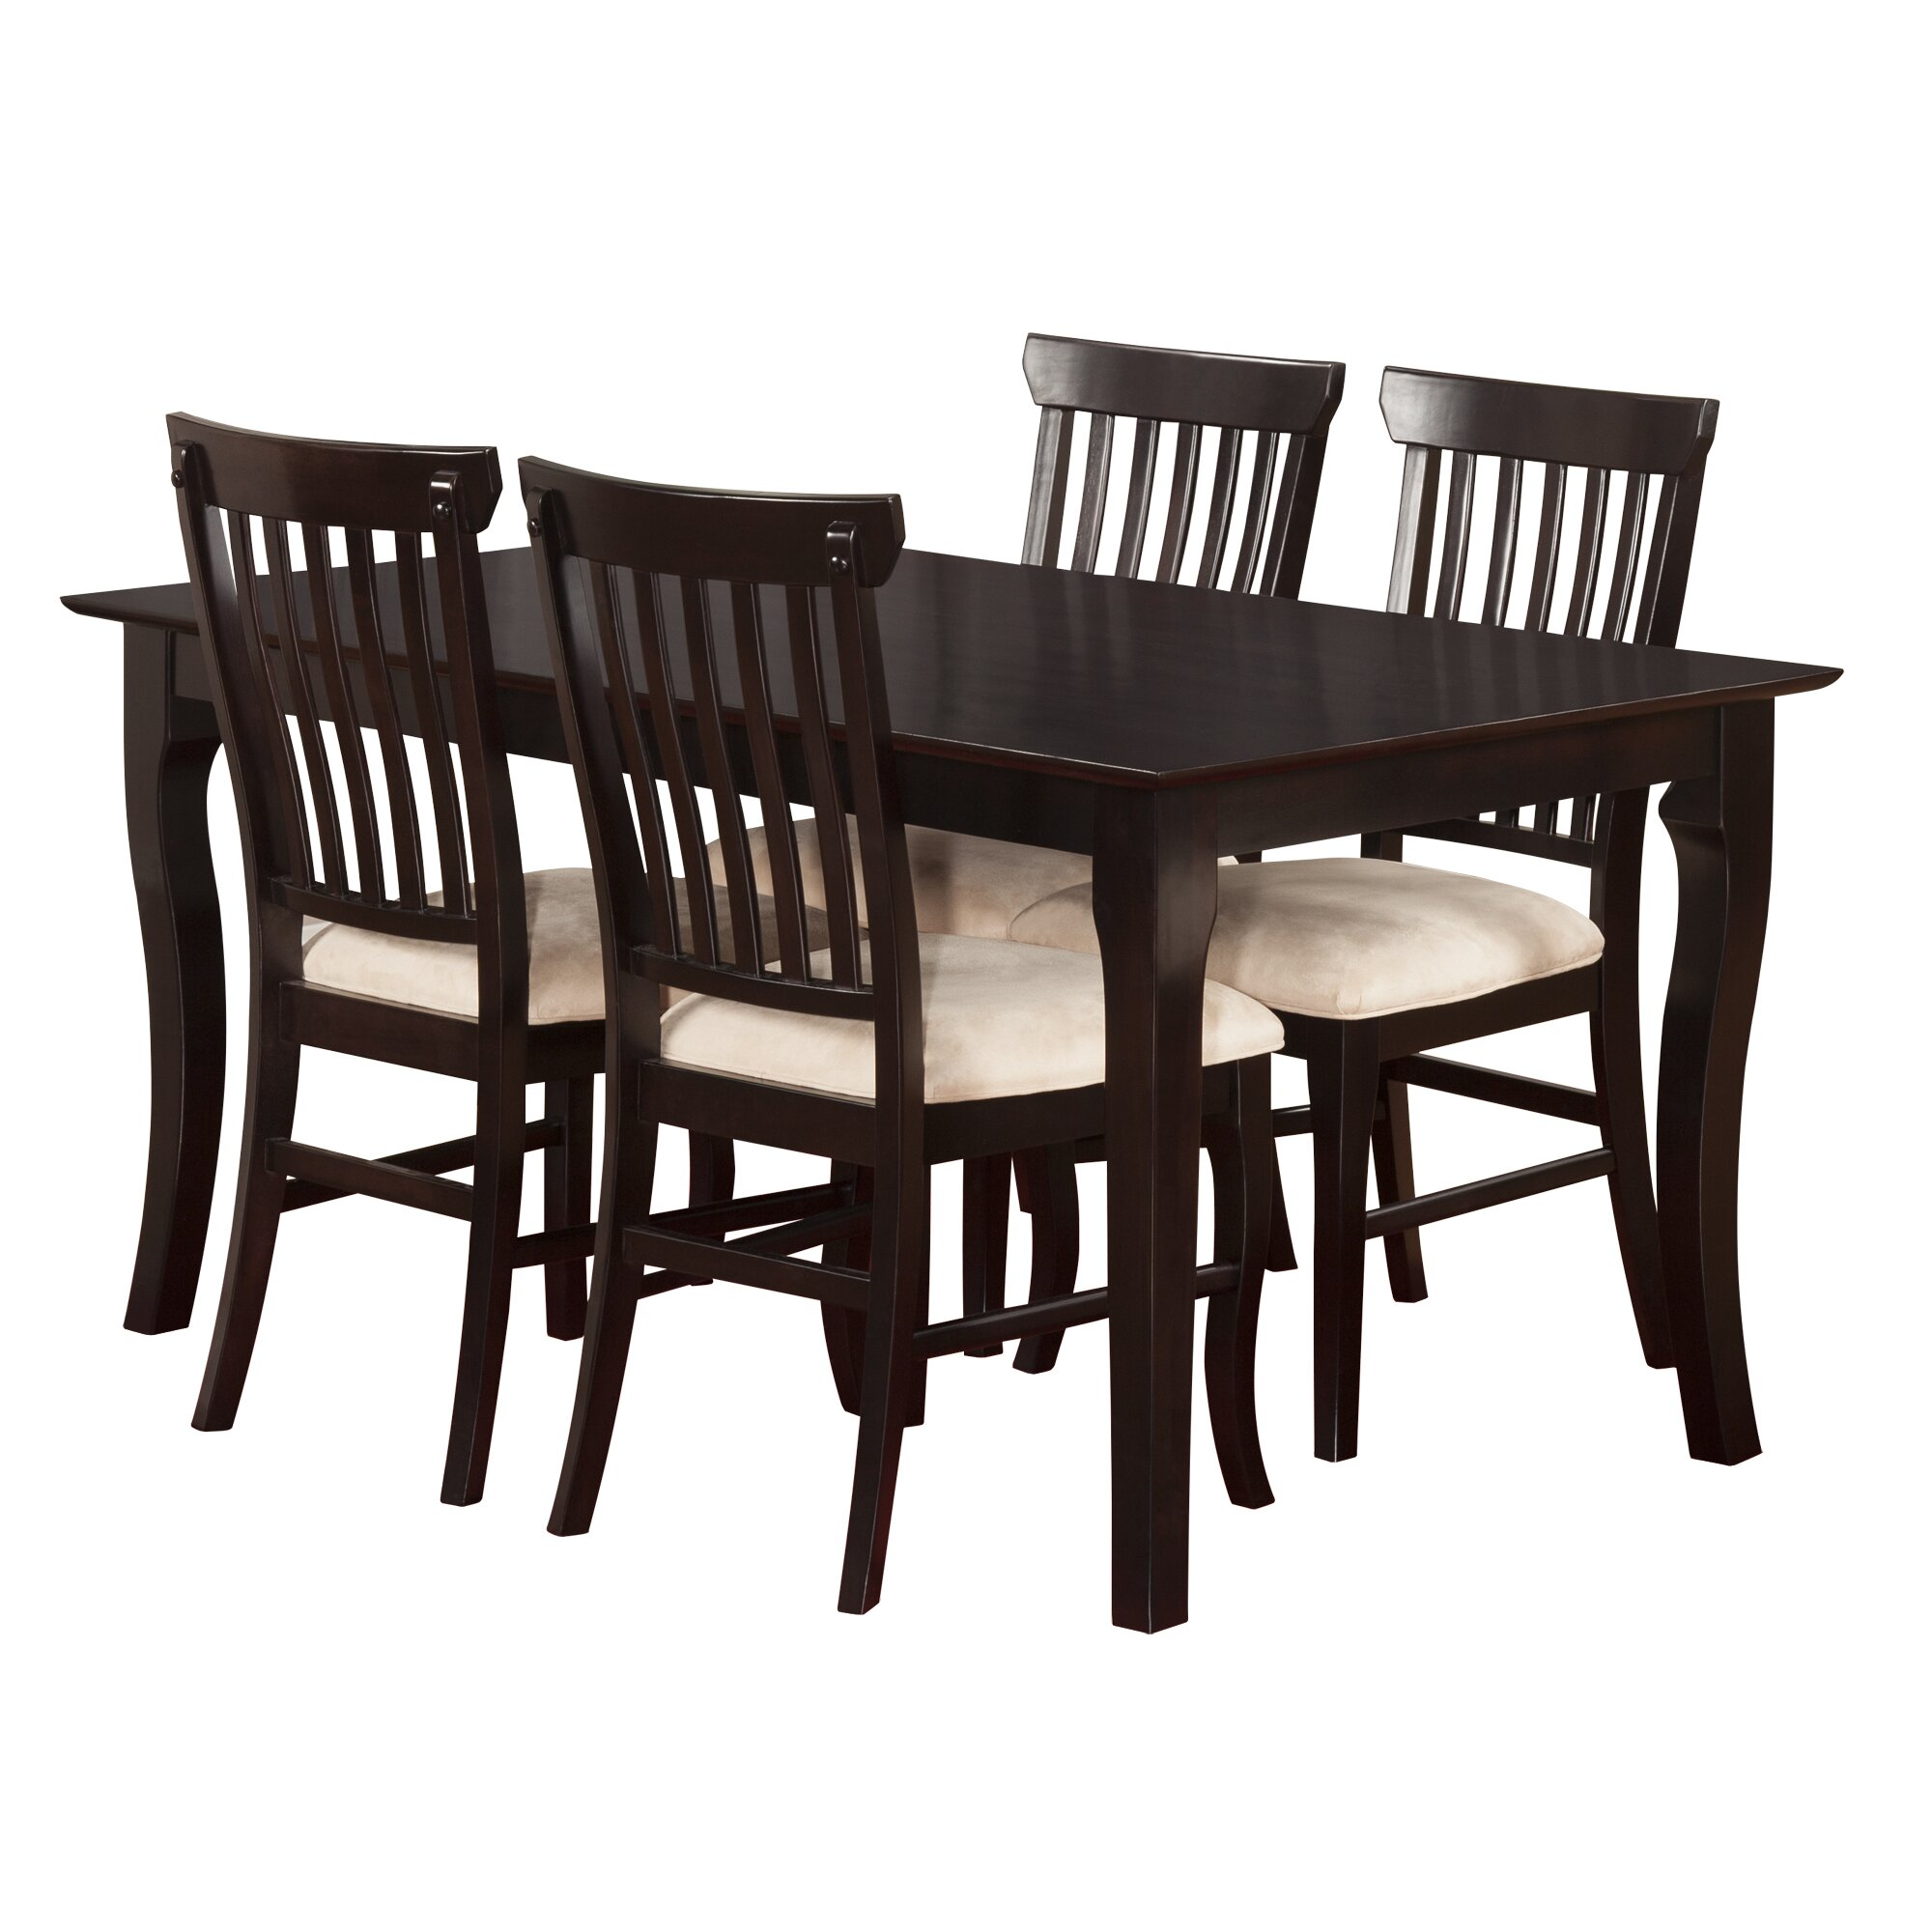 Darby home co newry 5 piece dining set reviews wayfair for 5 piece dining set